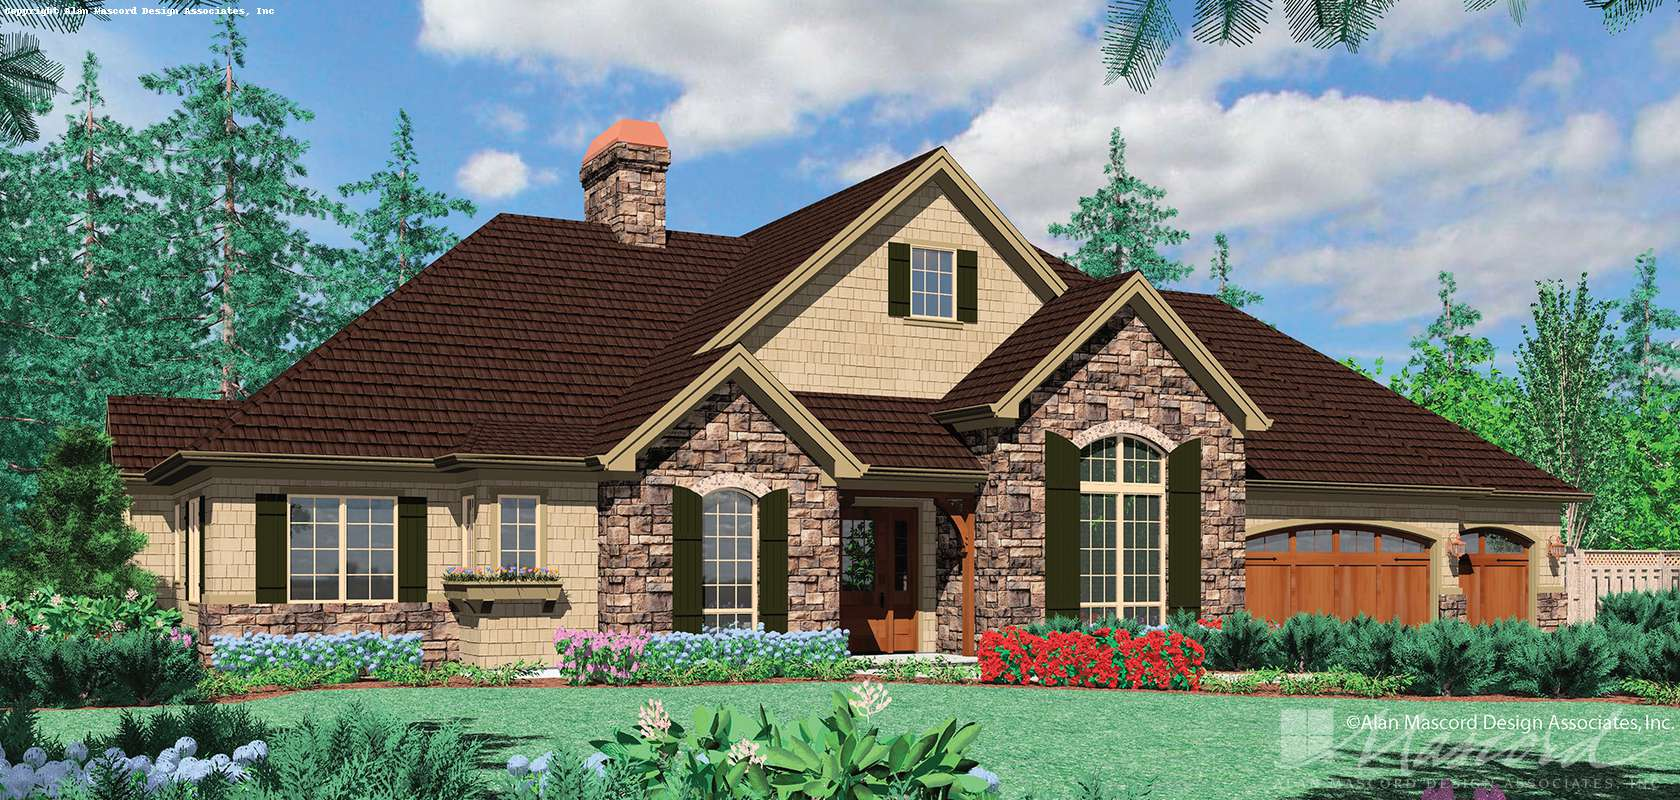 Mascord House Plan 1408: The Jorgenson